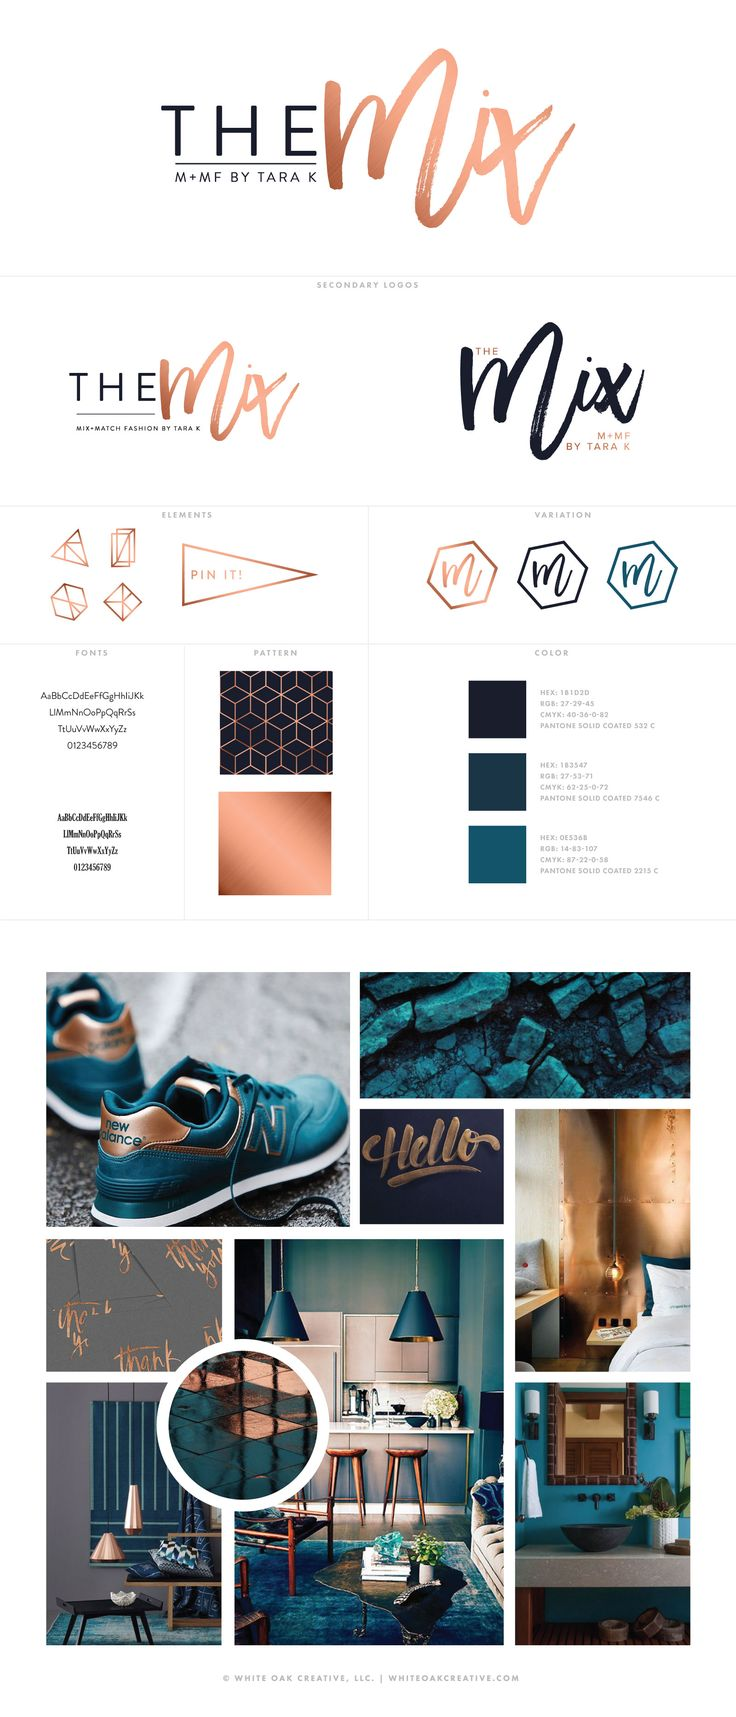 The Mix By Tara K Brand Identity and Blog Design - logo design, wordpress theme, mood board inspiration, blog design idea, graphic design, branding, style blog, fashion